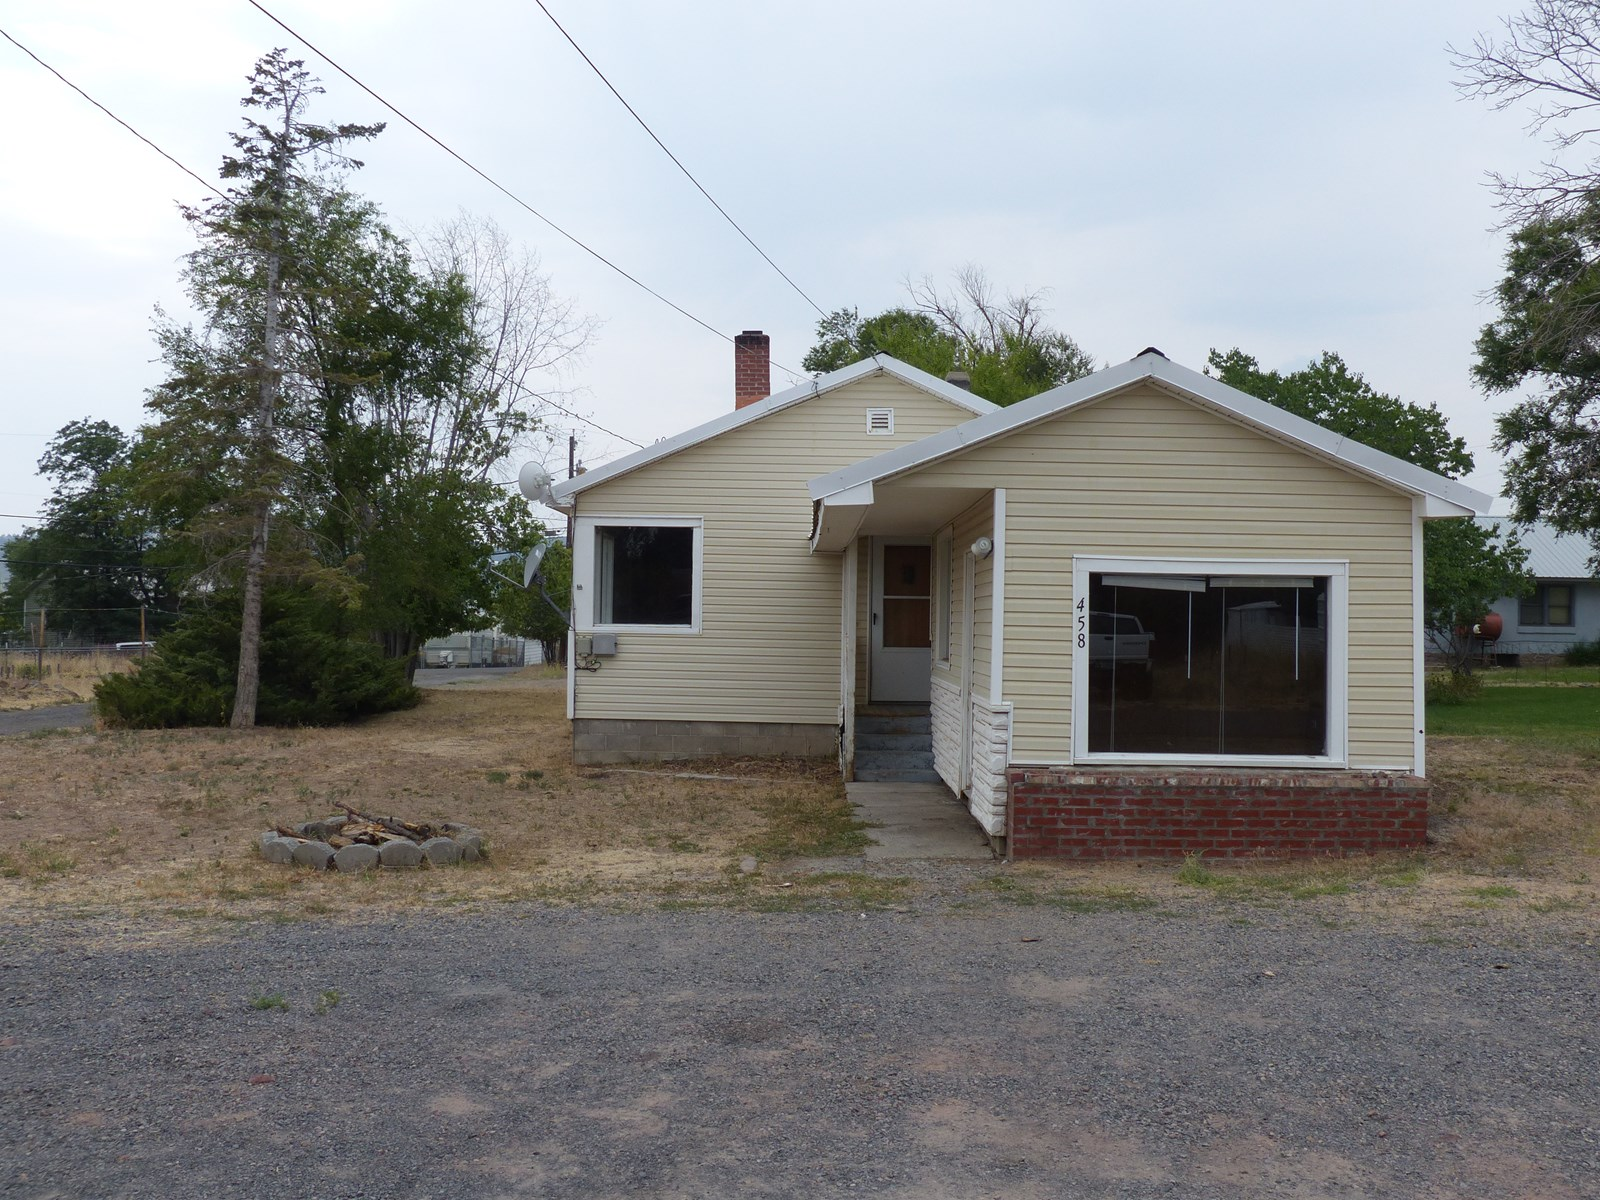 HOME FOR SALE IN BURNS - NEAR HOSPITAL